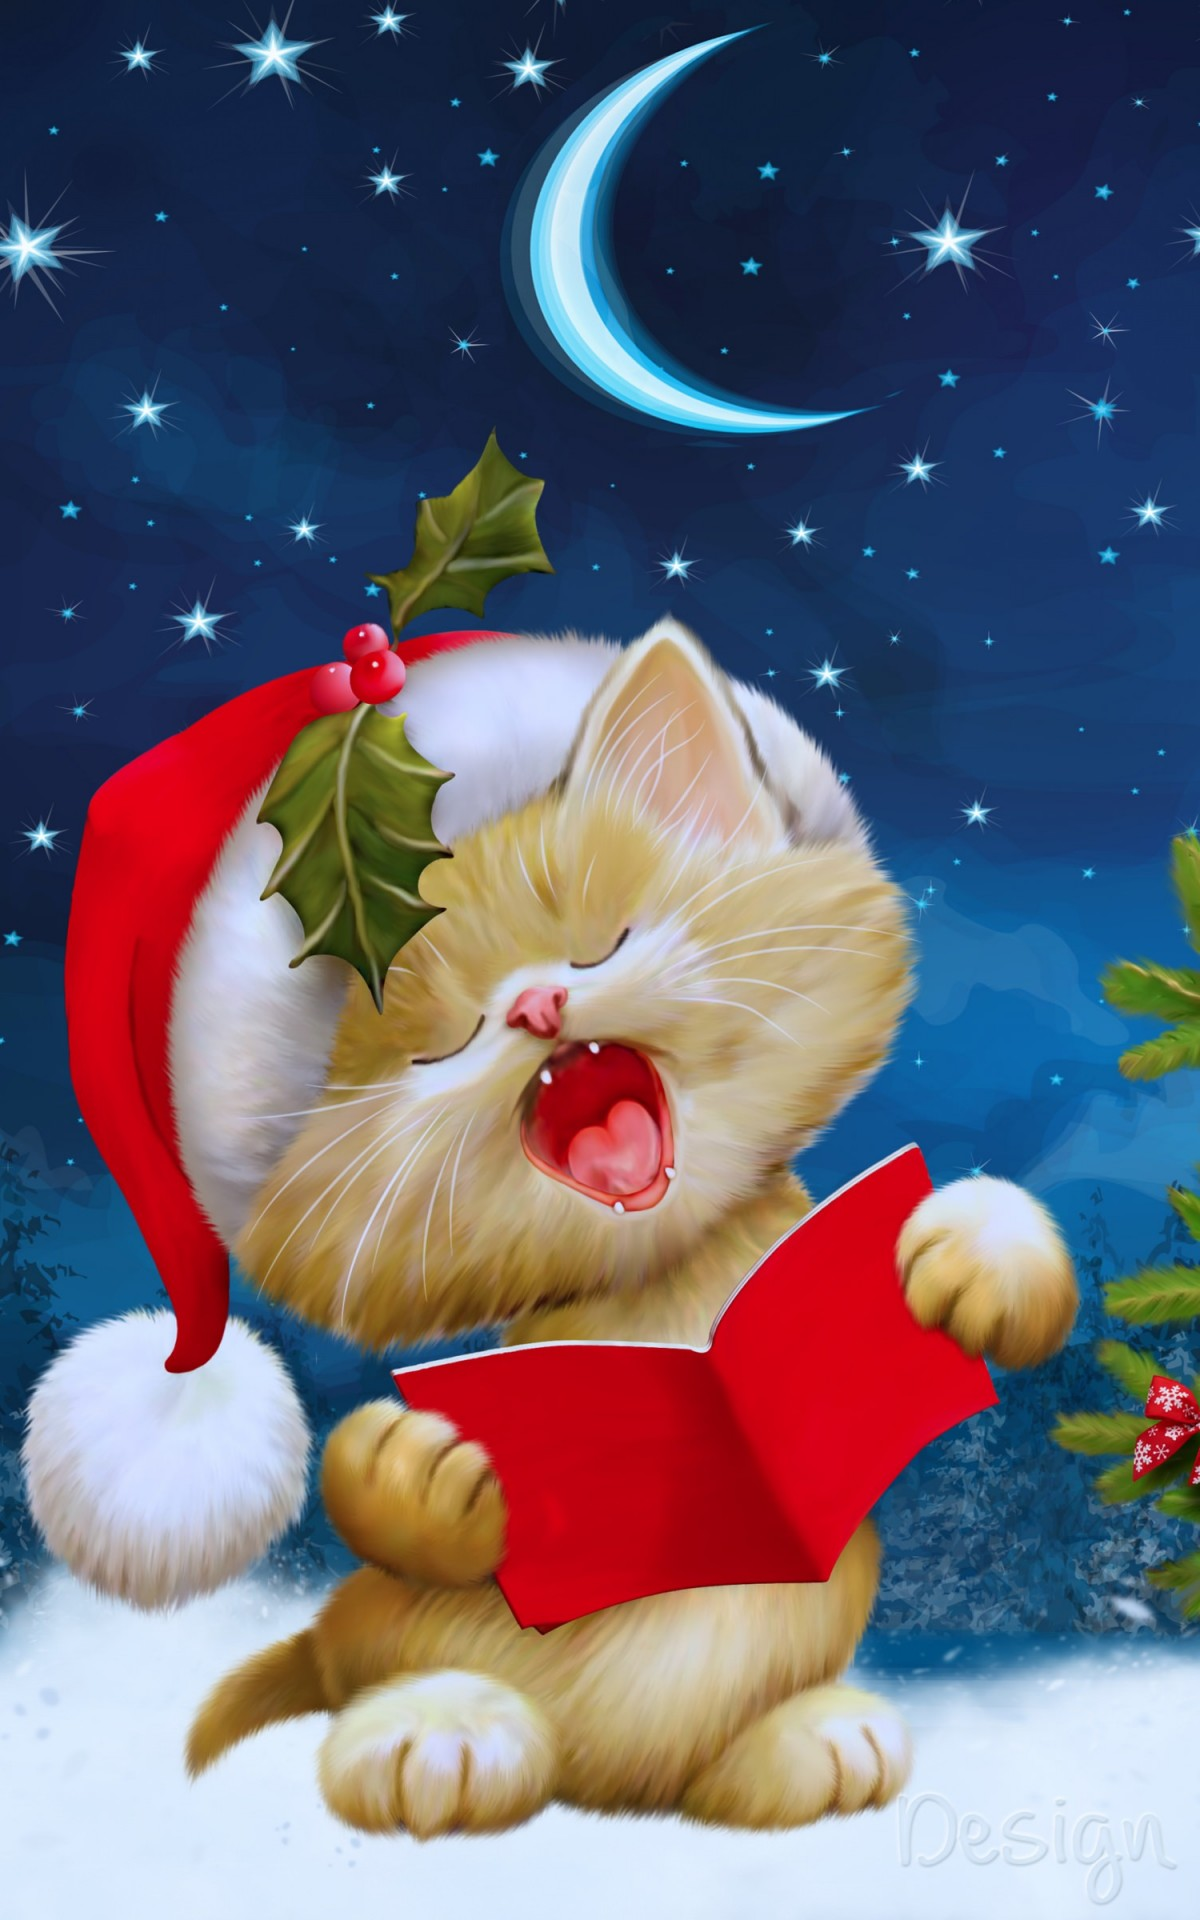 Christmas Carols HD wallpaper for Kindle Fire HDX   HDwallpapersnet 1200x1920